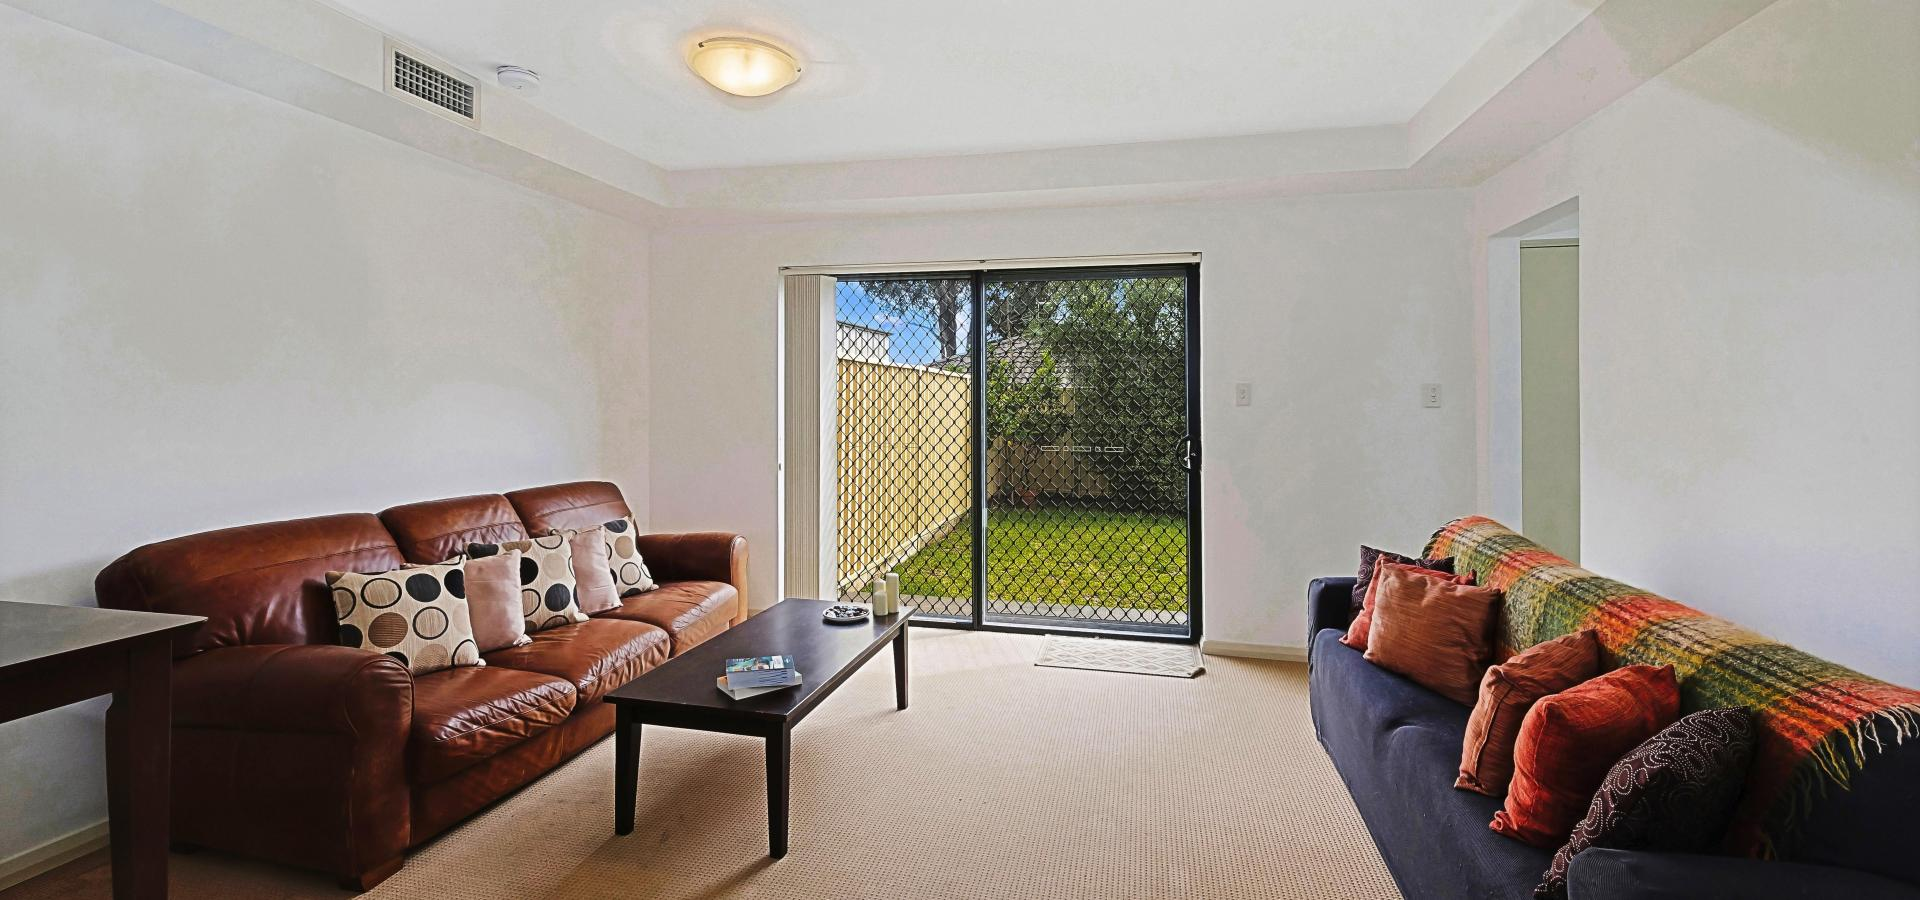 Torrens title / No strata fees